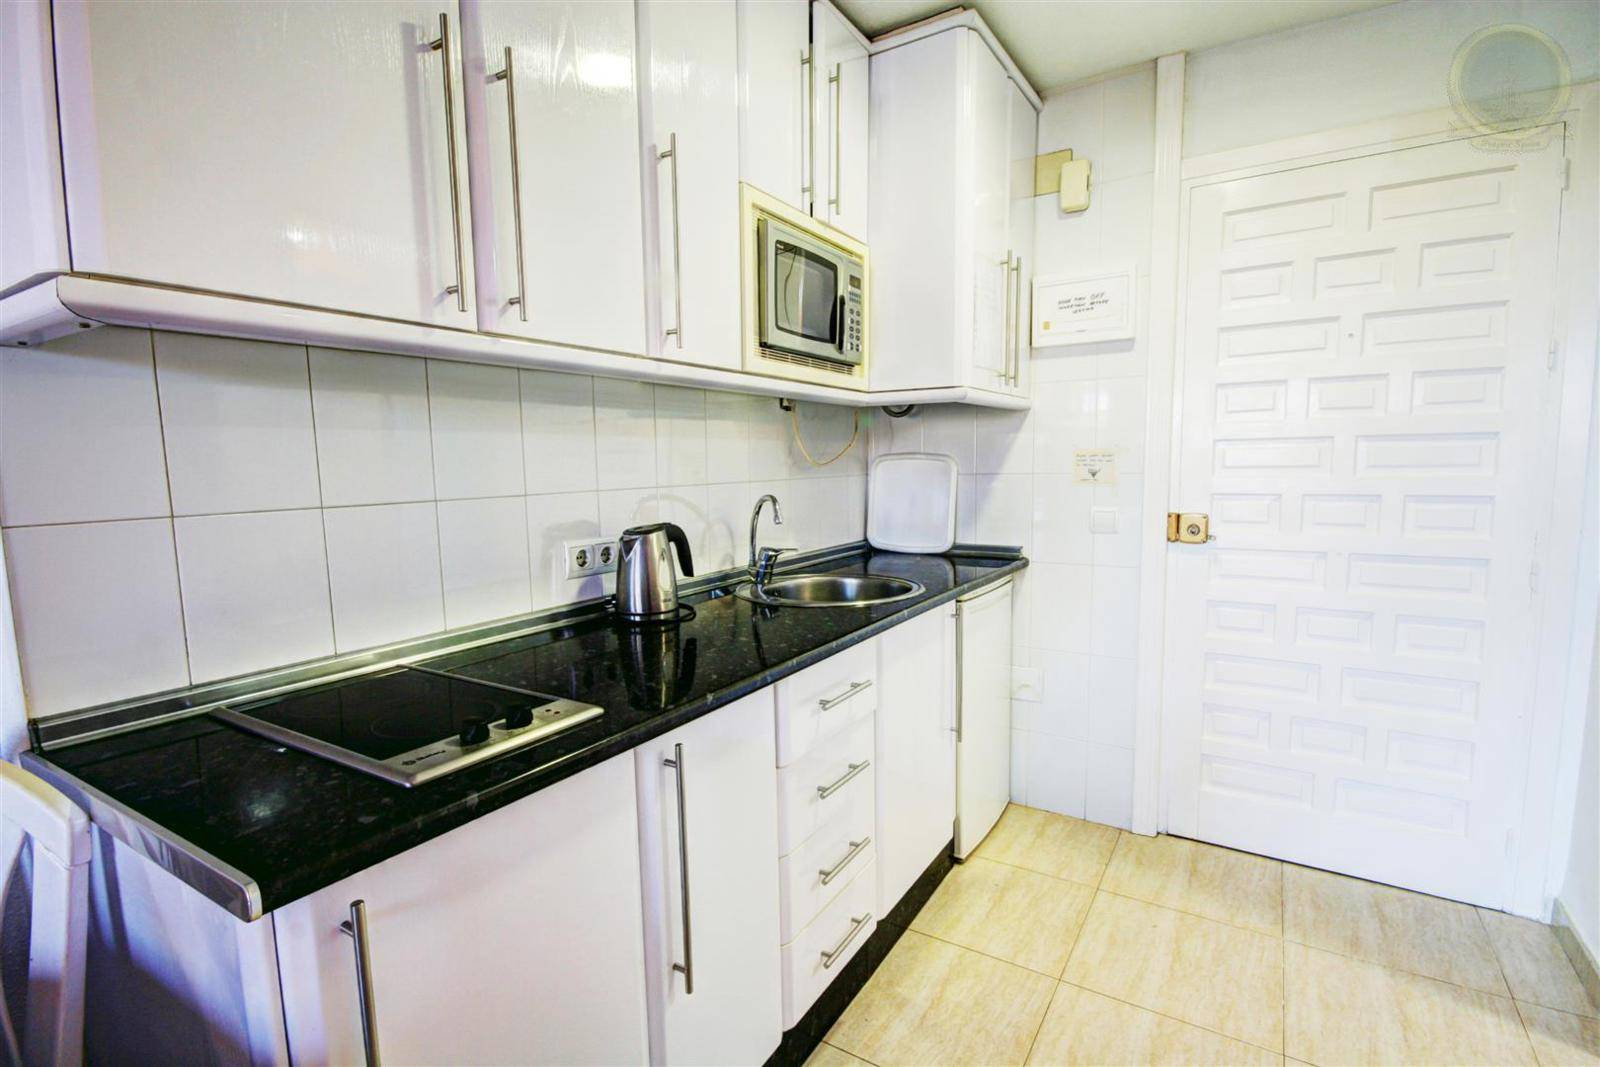 studio for sale in benalbeach 5